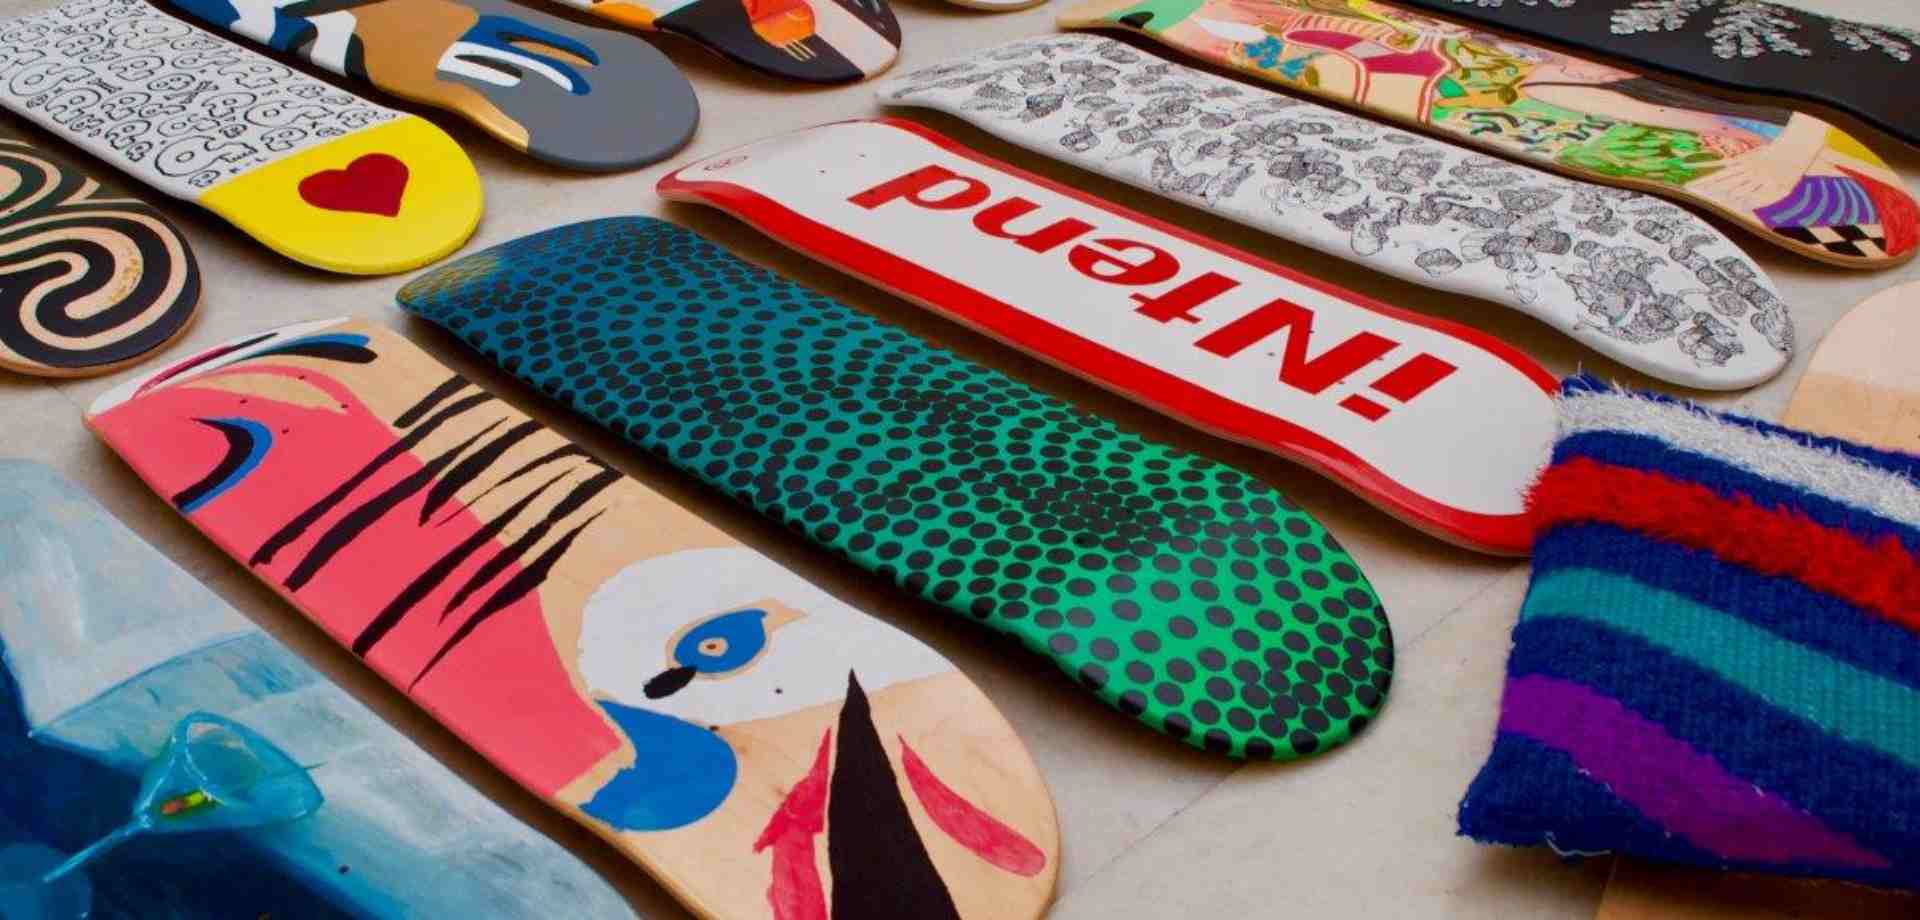 Art on Boards | The Skate Project